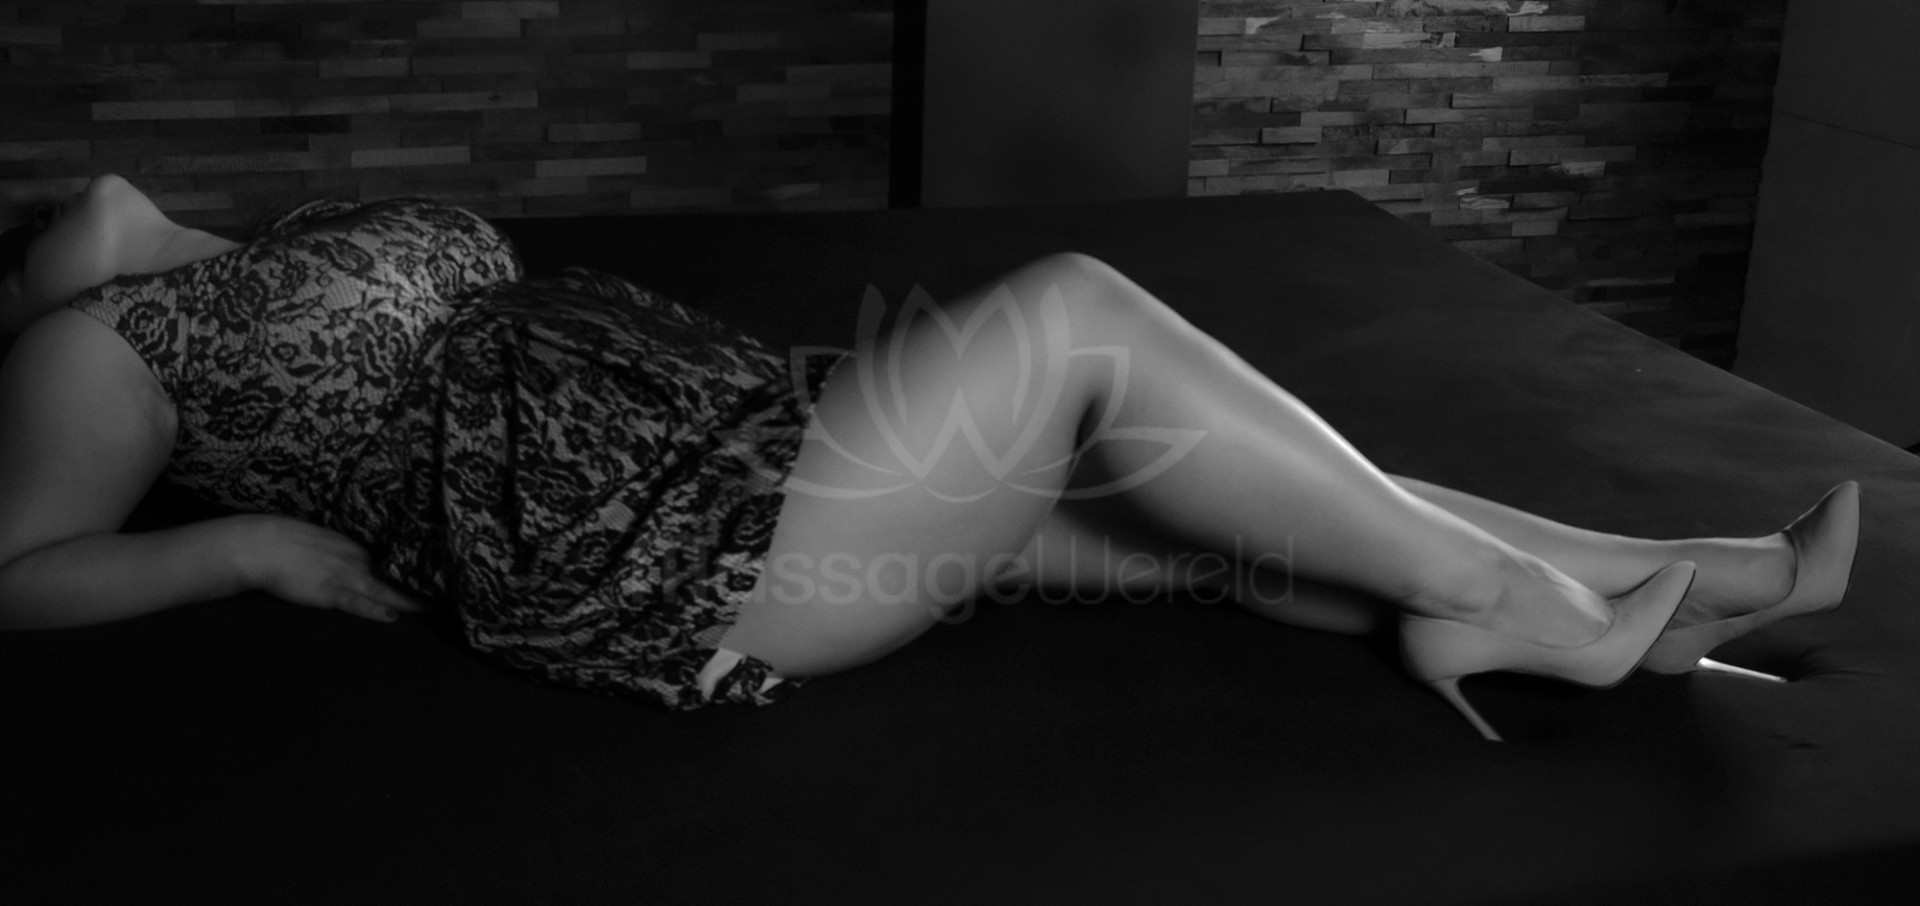 club sensuele massage gemeenschap in Ootmarsum